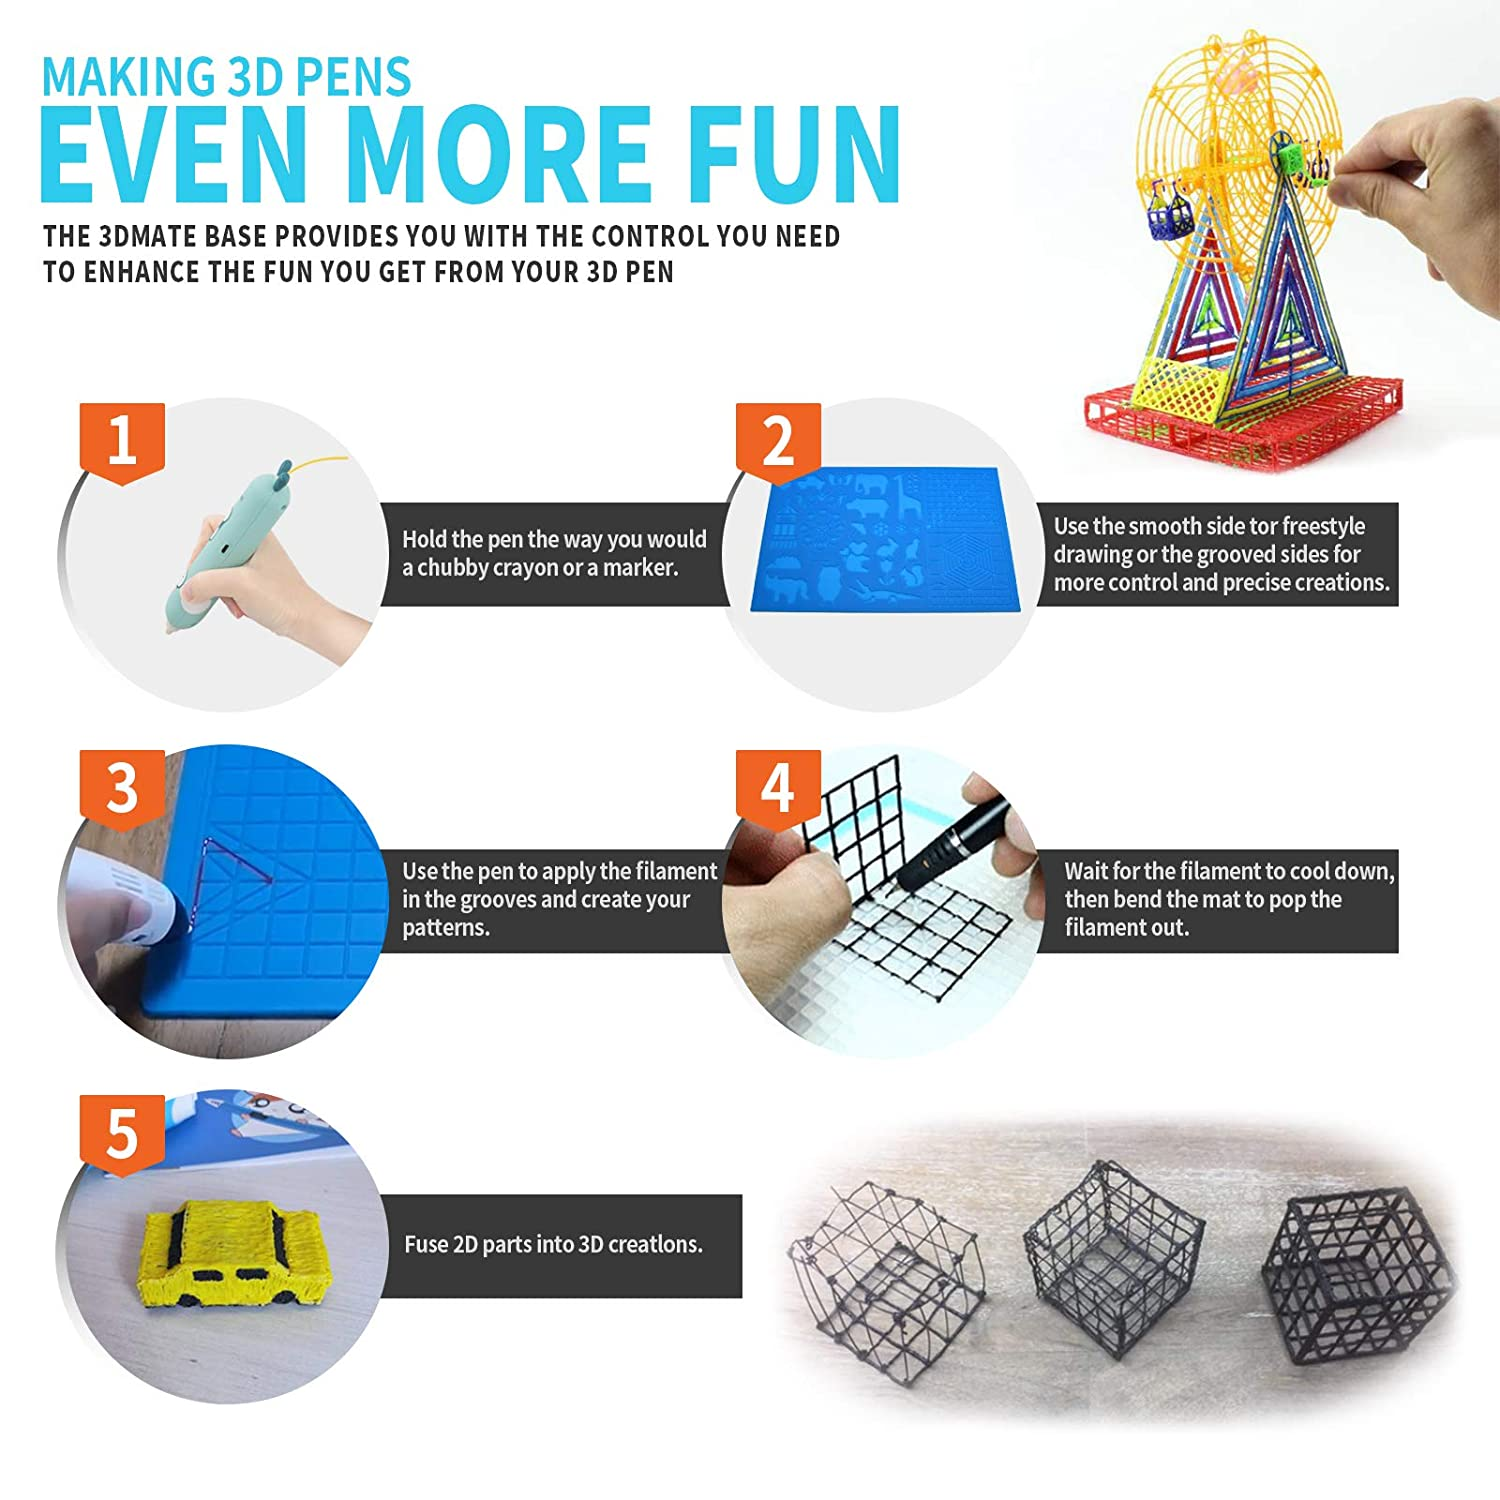 10.53x16.5 in Large Multi-Shaped 3D Silicone Design Mat,3D Pens Drawing Tools with 2 Fingers Caps,Great Christmas Gift for 3D Beginners,Children and Friends 3D Printing Pen Mat with Patterns